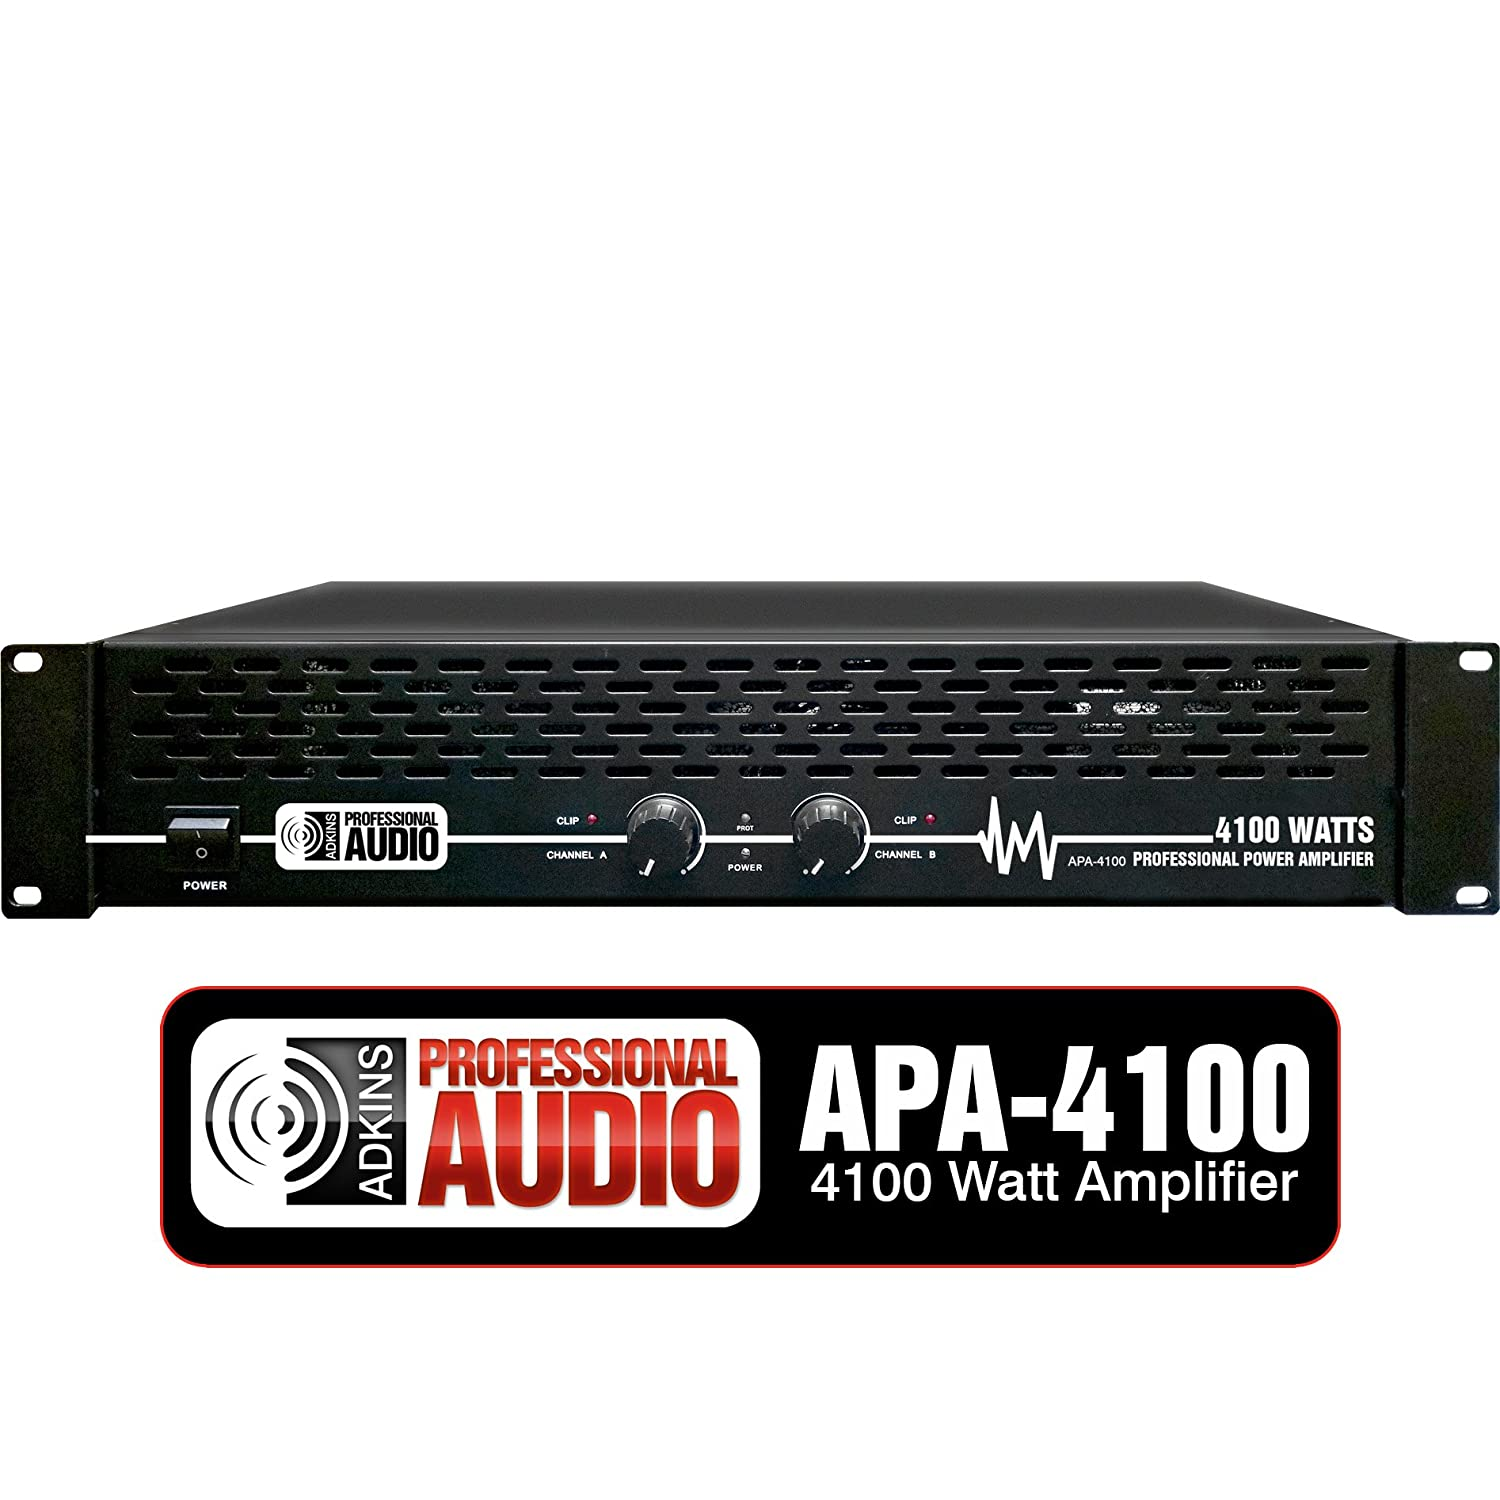 amazon com: 4100 watt professional dj power amplifier - adkins pro audio -  quality